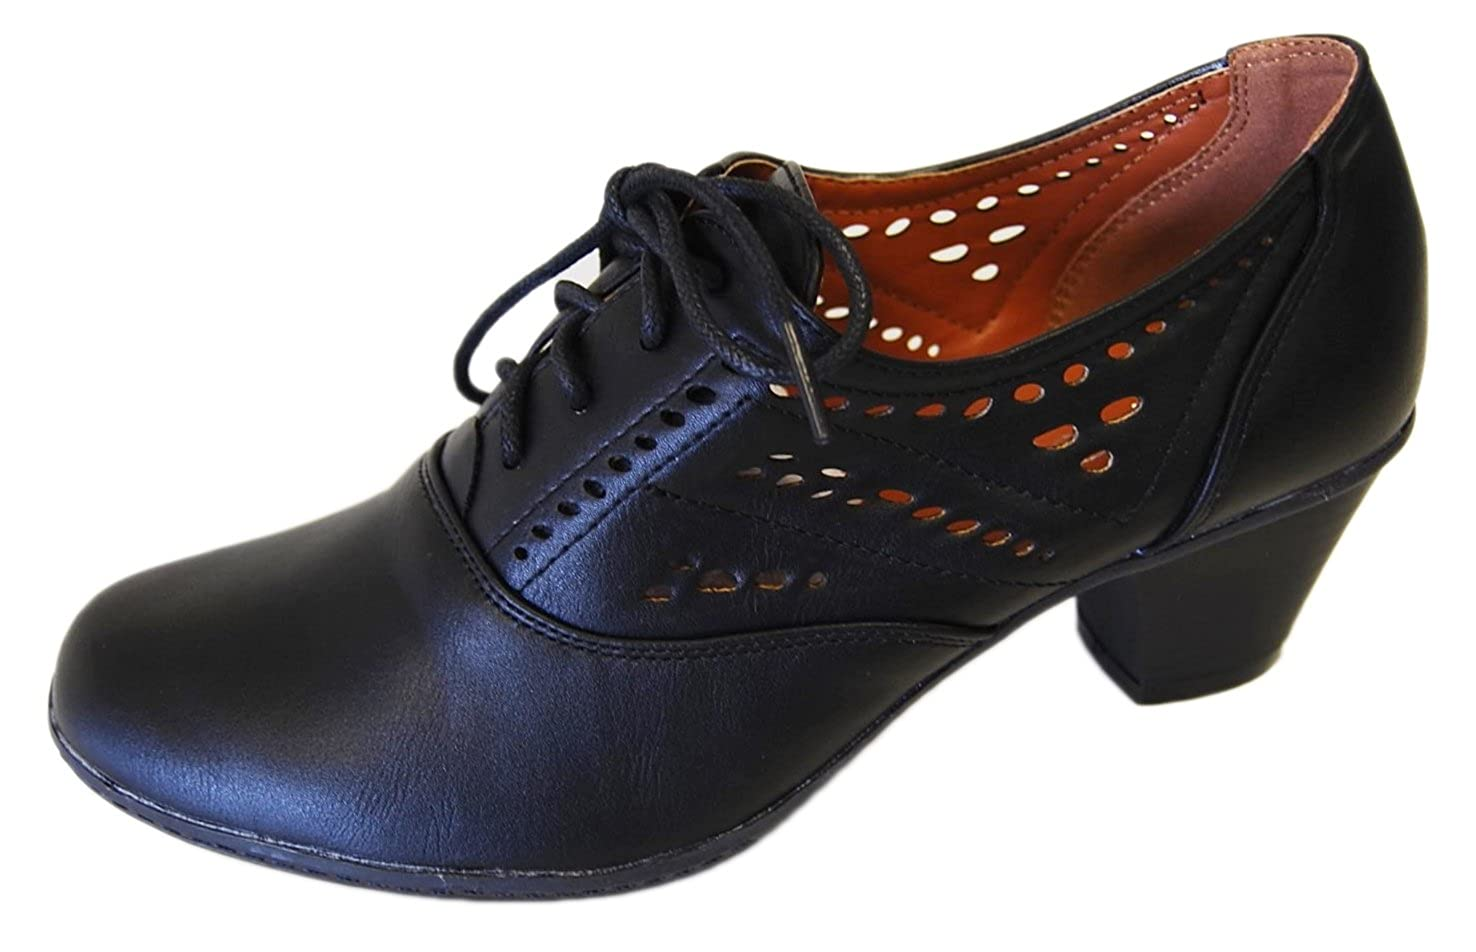 Vintage Style Shoes, Vintage Inspired Shoes Refresh Womens London-01 Cutout Heeled Oxford $41.90 AT vintagedancer.com